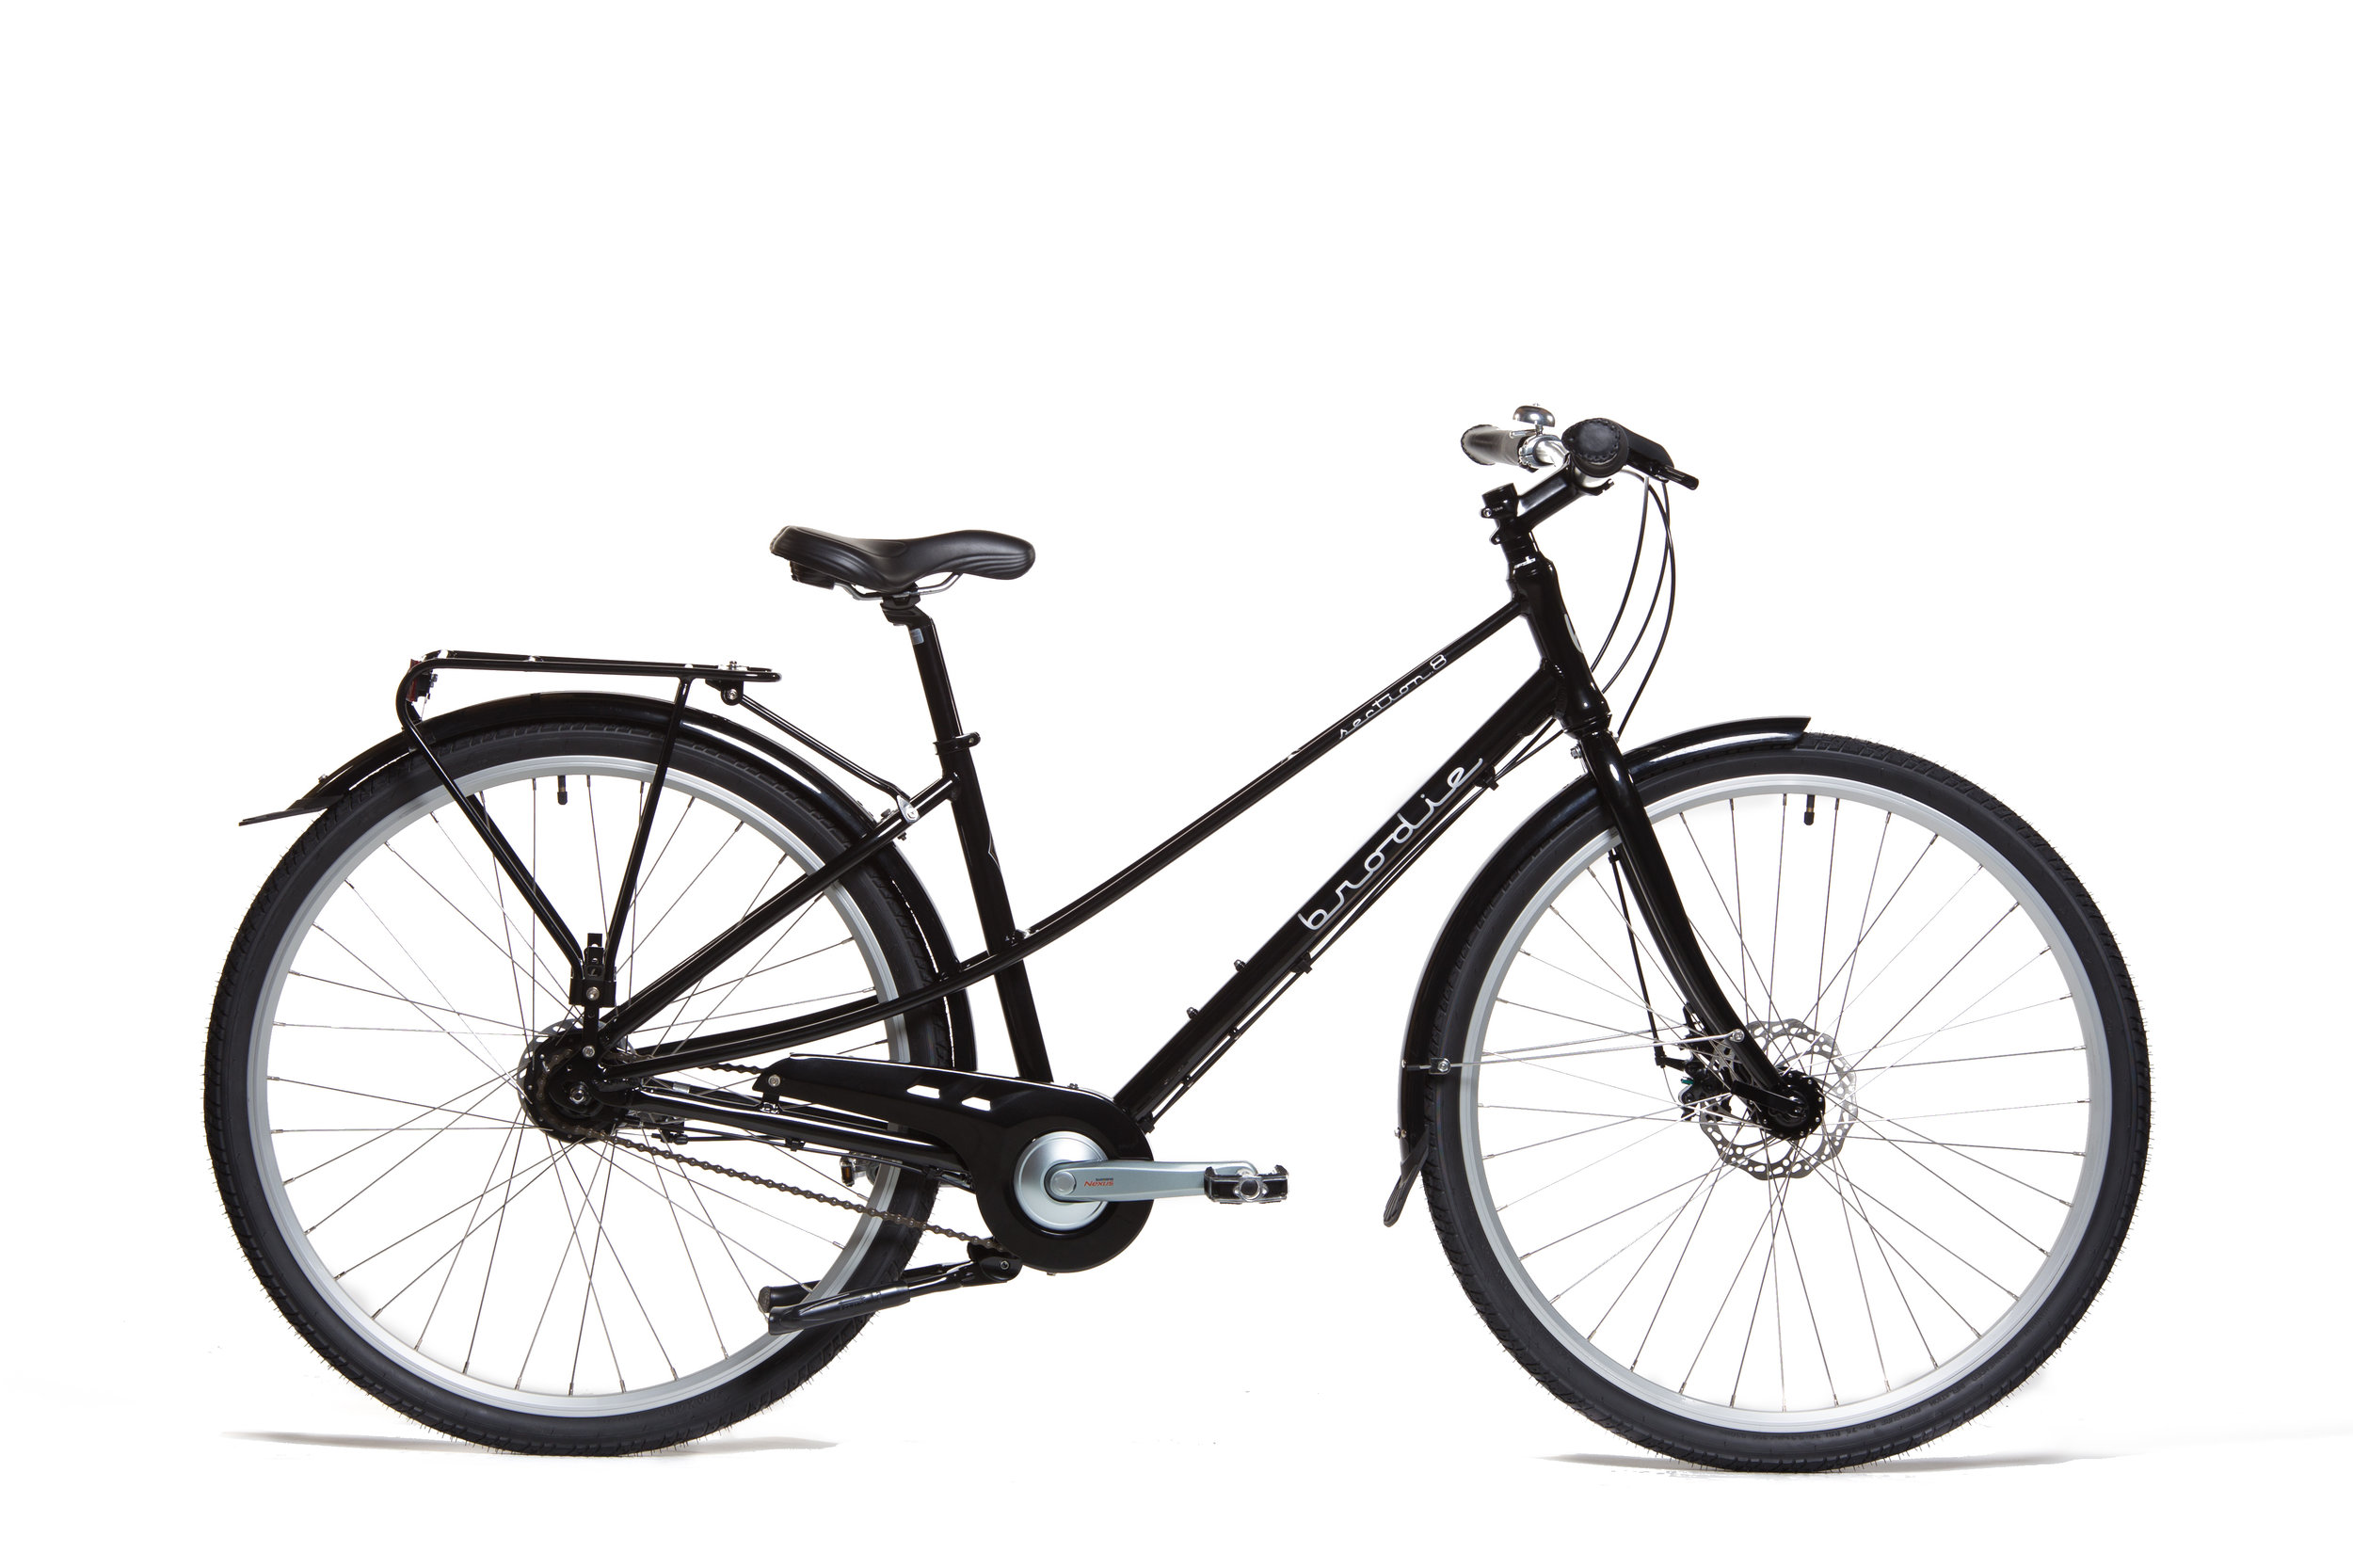 Section 8 Mixte - $999